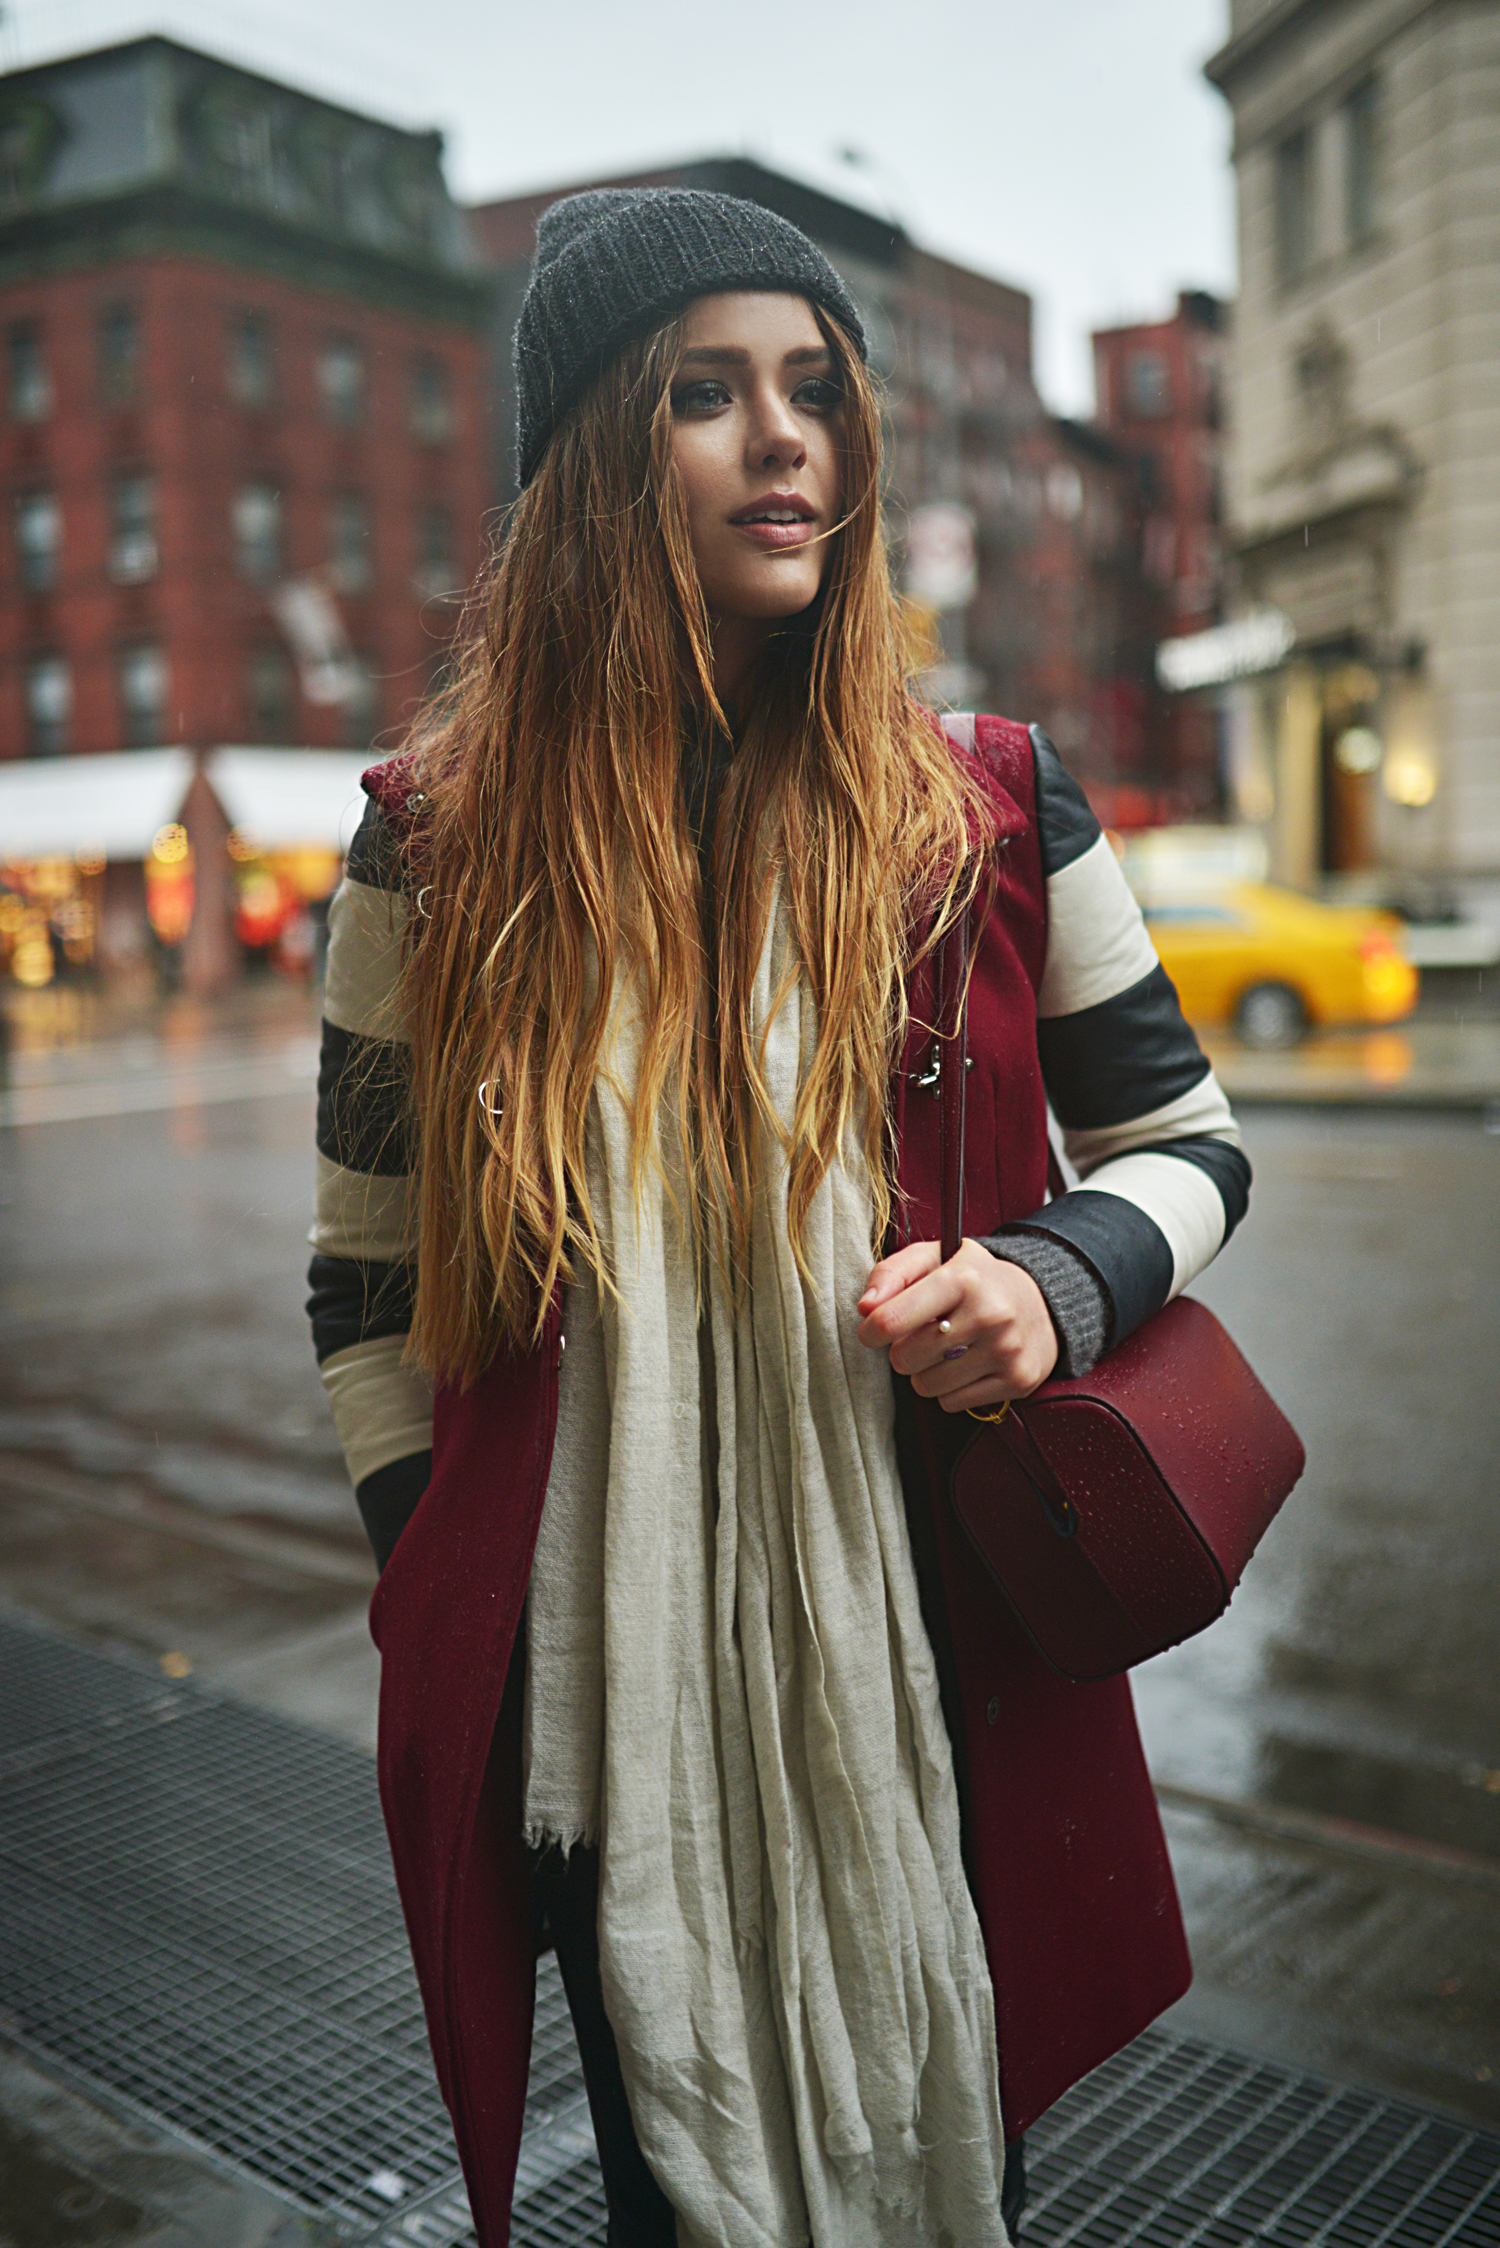 Kristina Bazan is wearing burgundy sleeveless jacket and clutch both from Fay